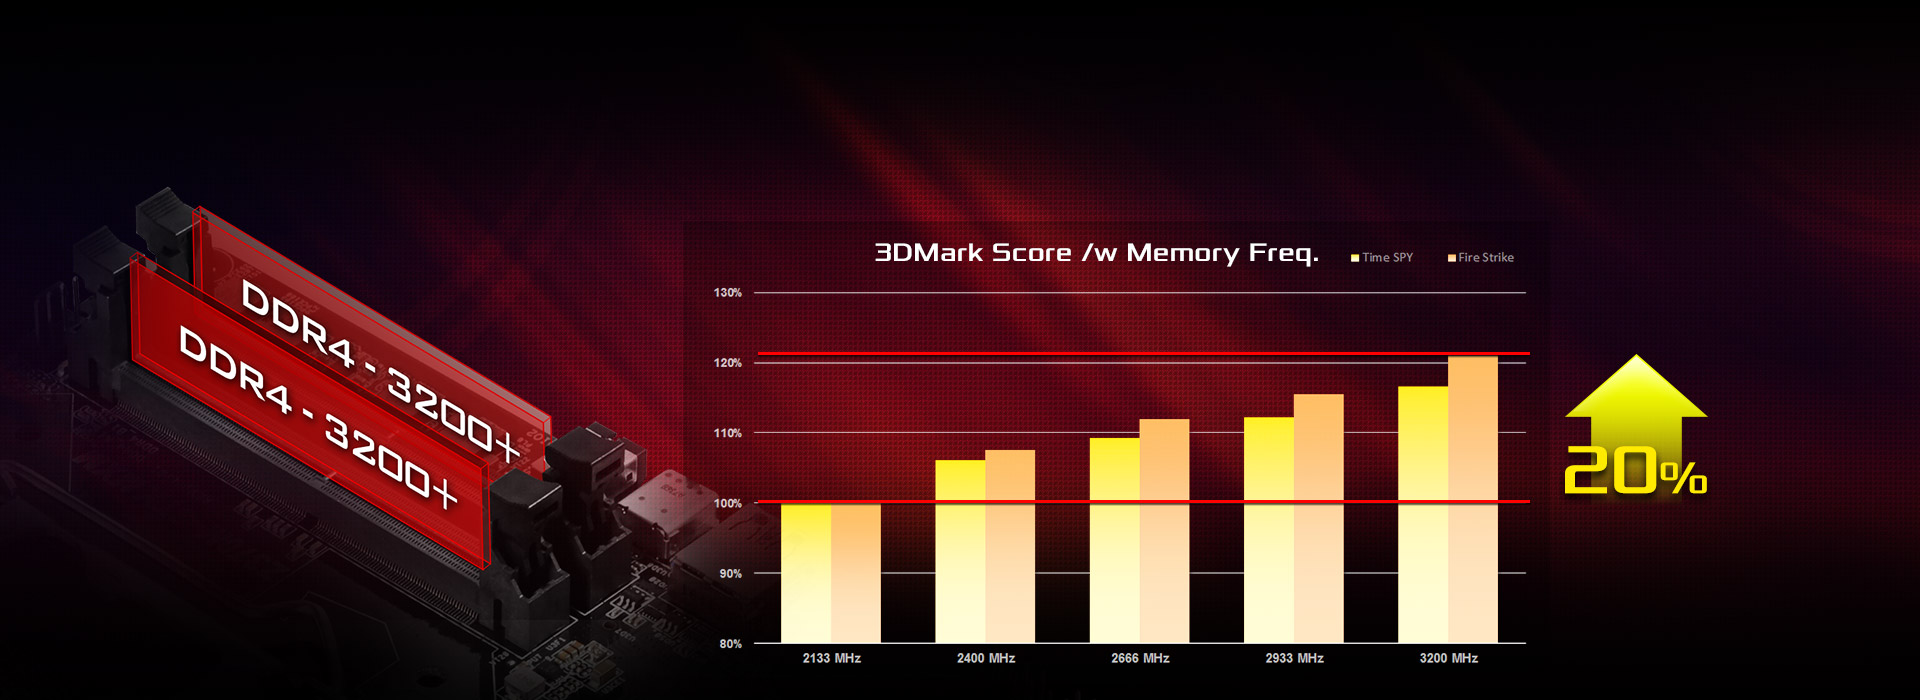 Graph showing the 3DMark Score of memory frequencies from 2133MHz to 3200MHz, a 20% increase from top to bottom.